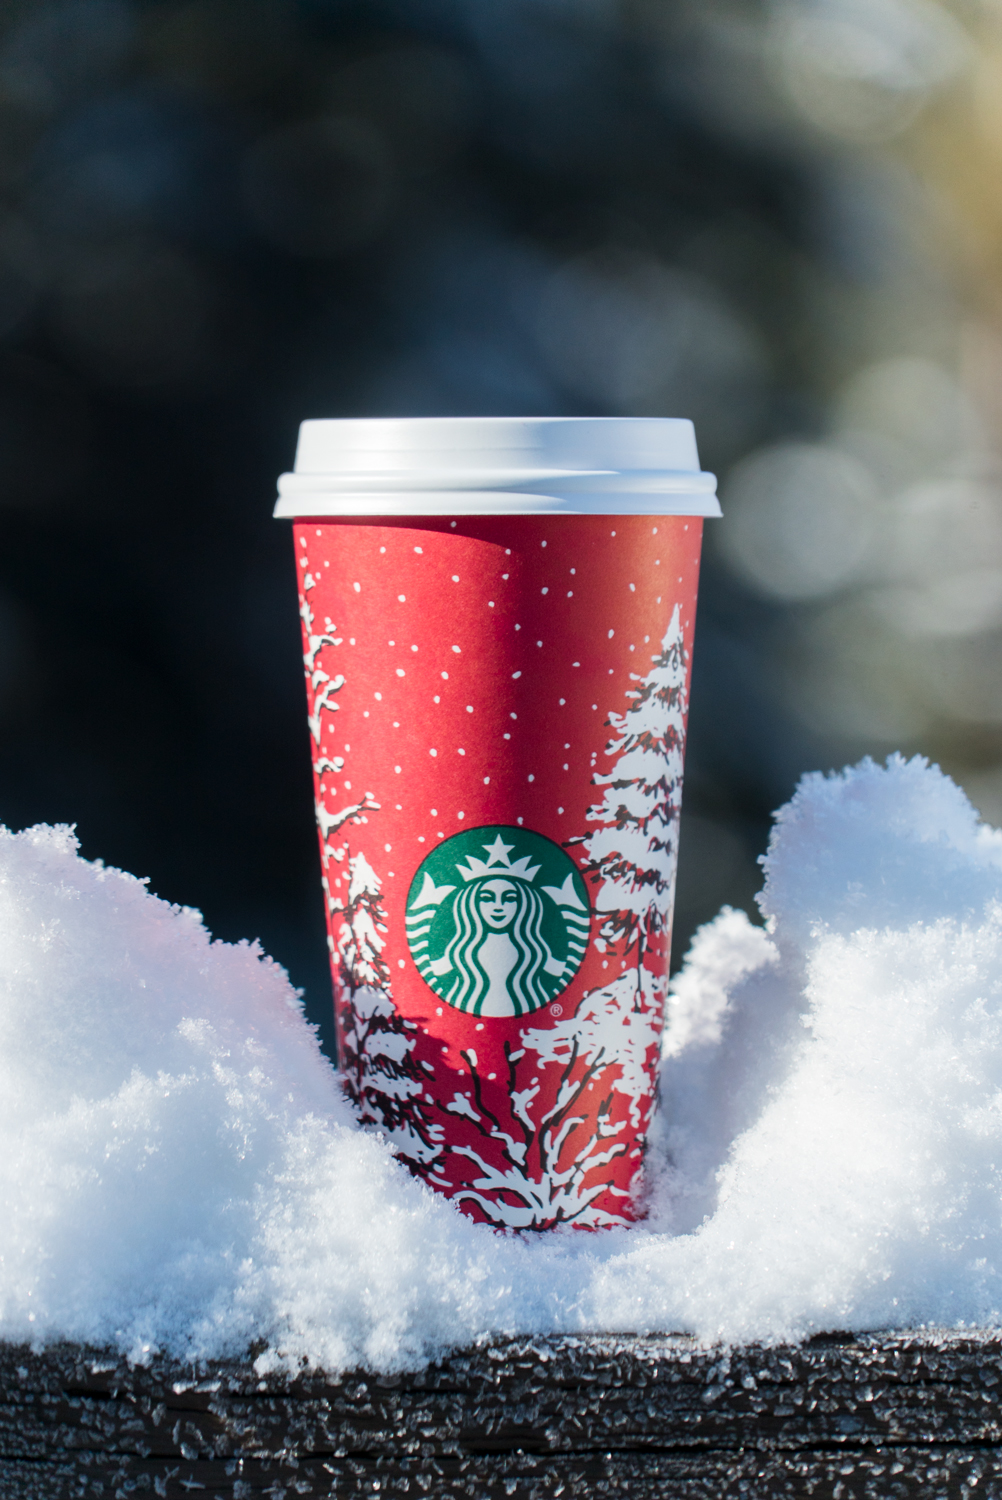 cory_woodruff_starbucks_product_photography.jpg